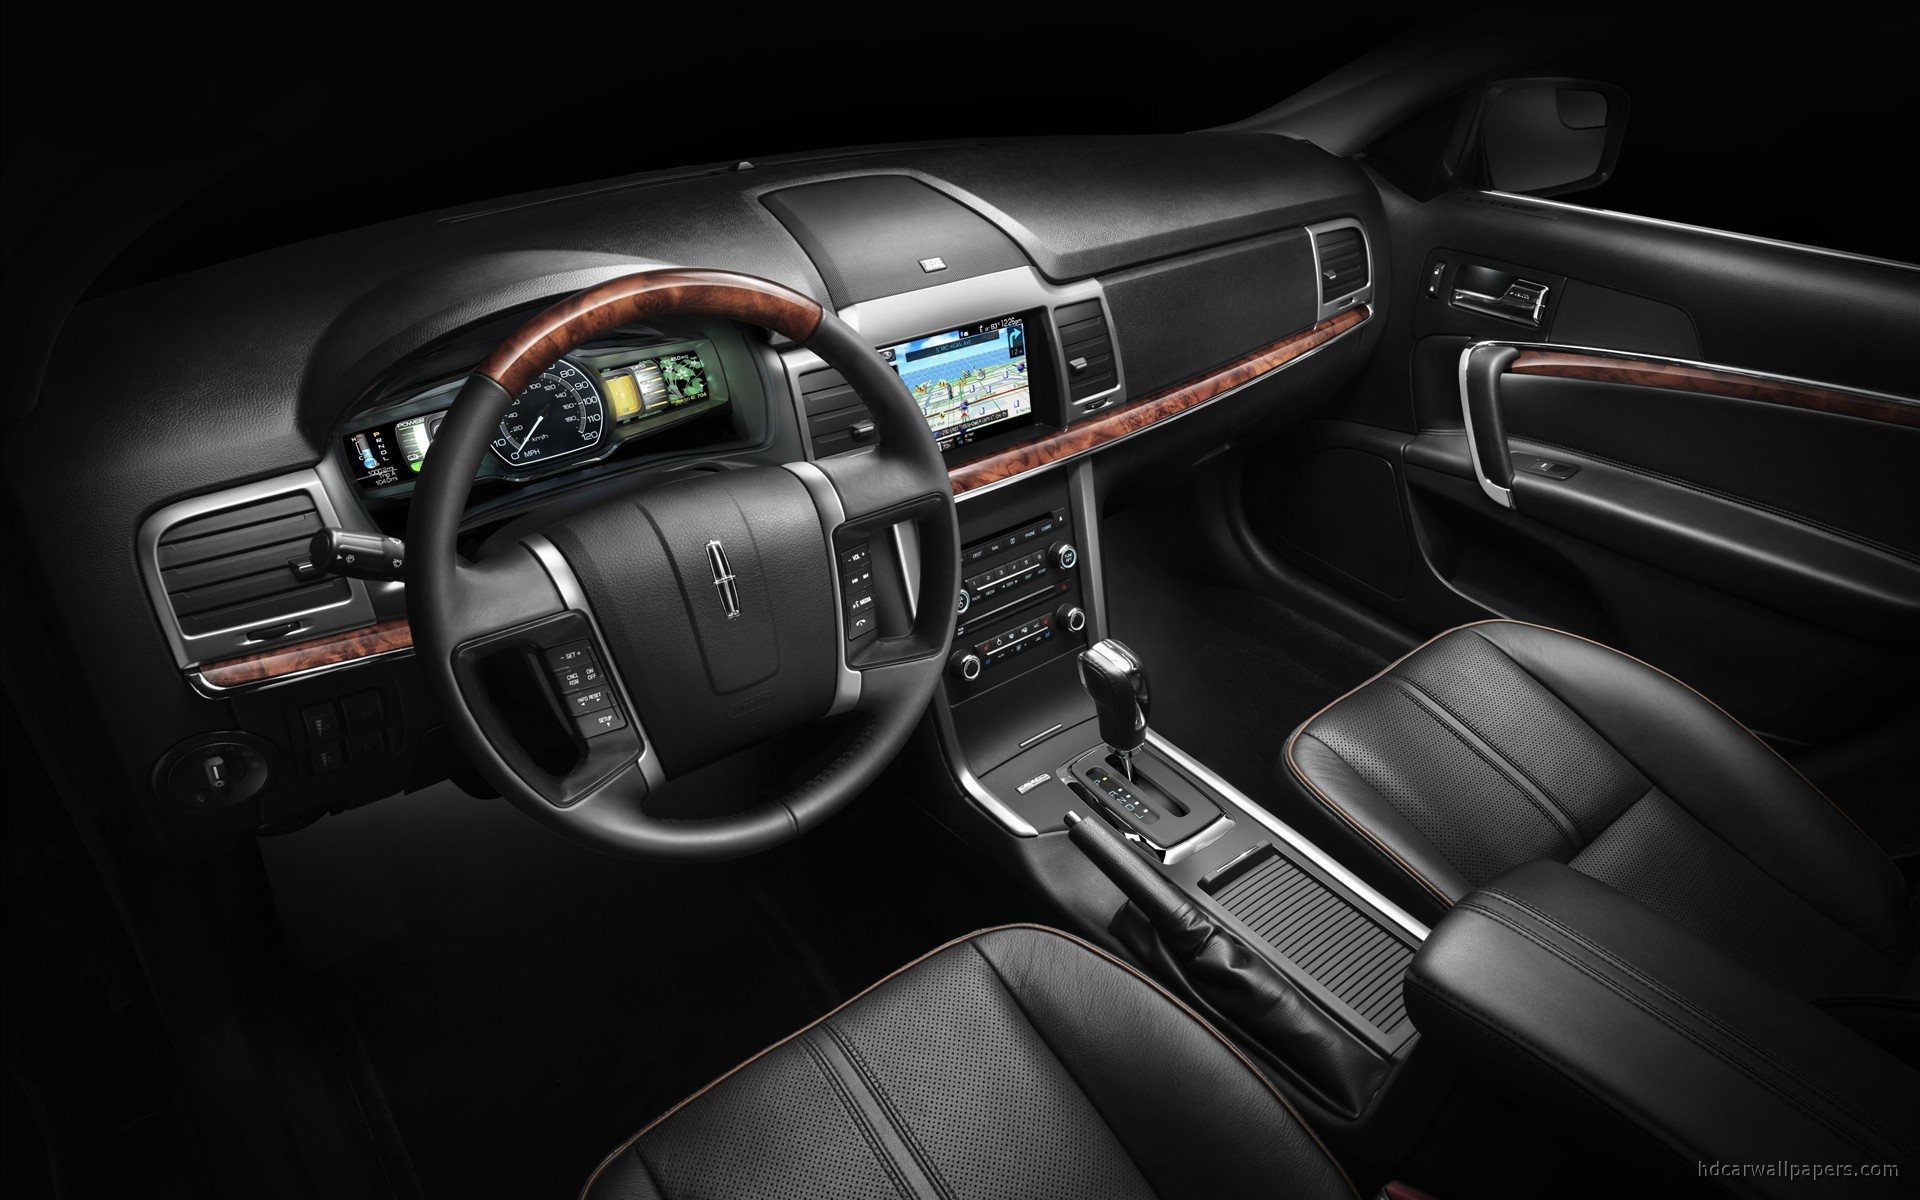 2010 Lincoln Mkt Town Car